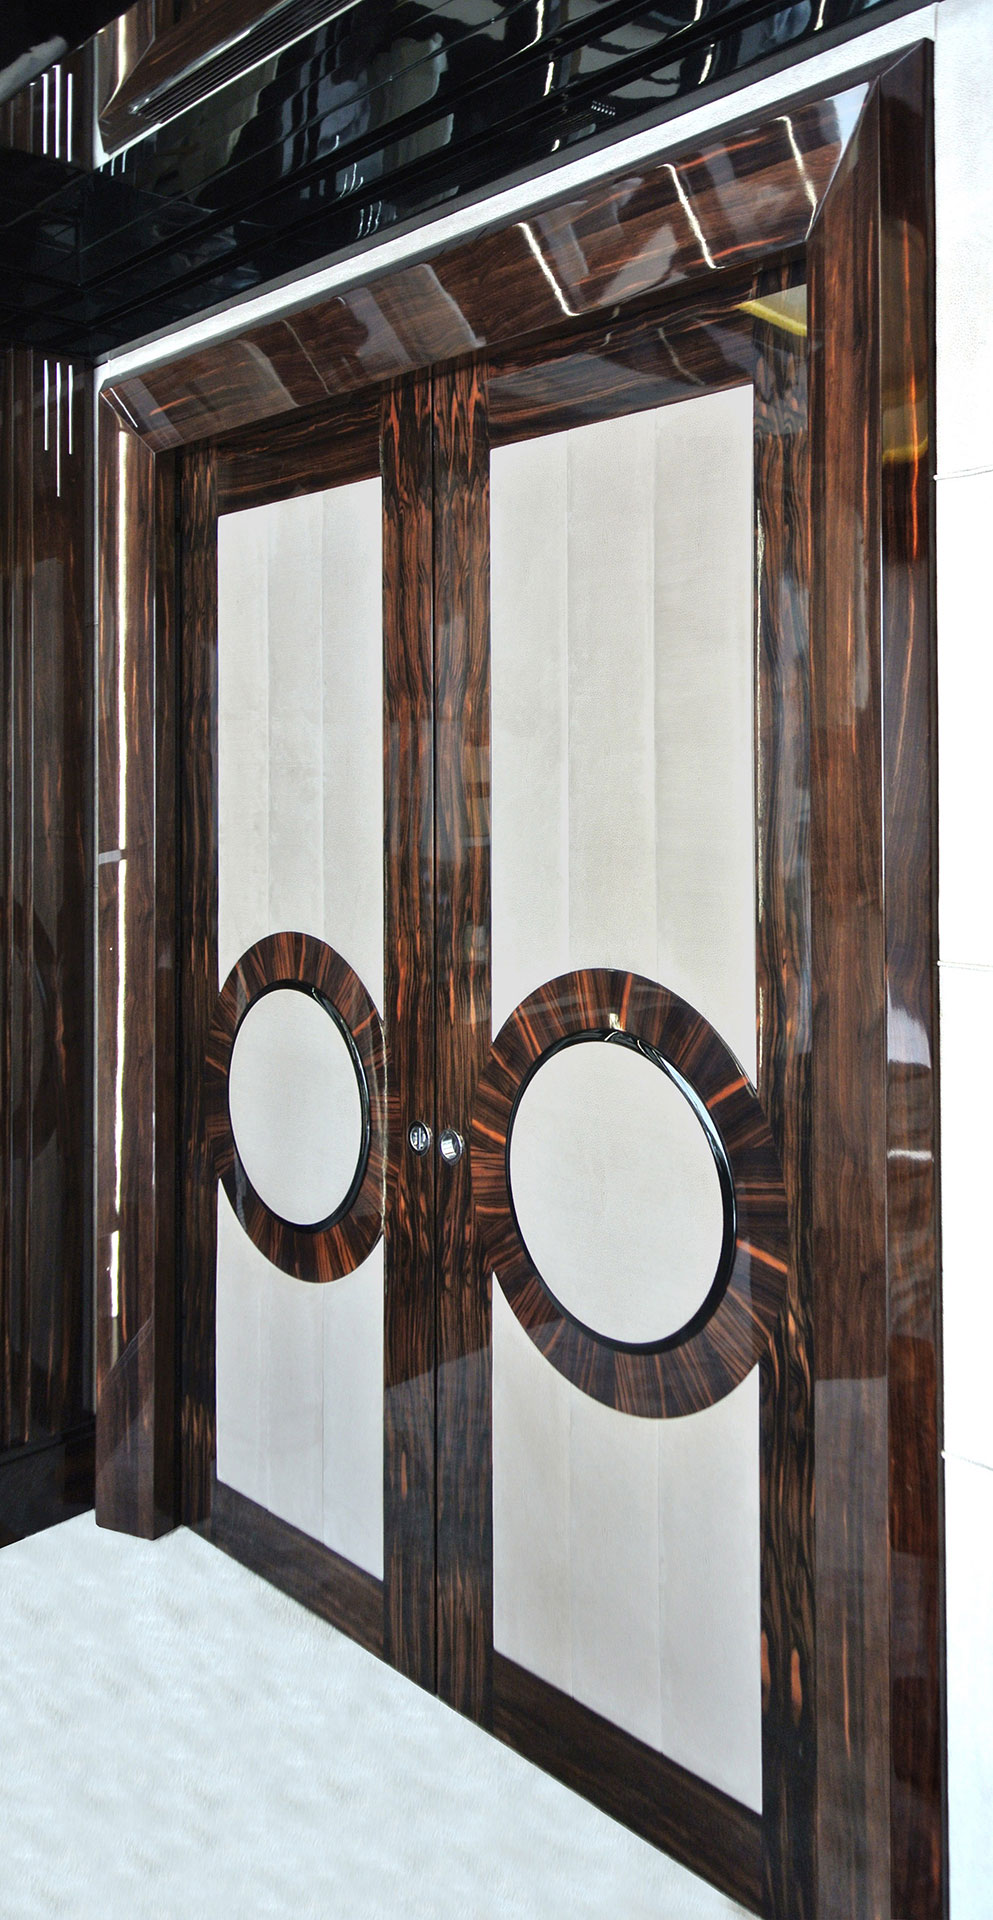 Faoma bespoke wood and leather front door